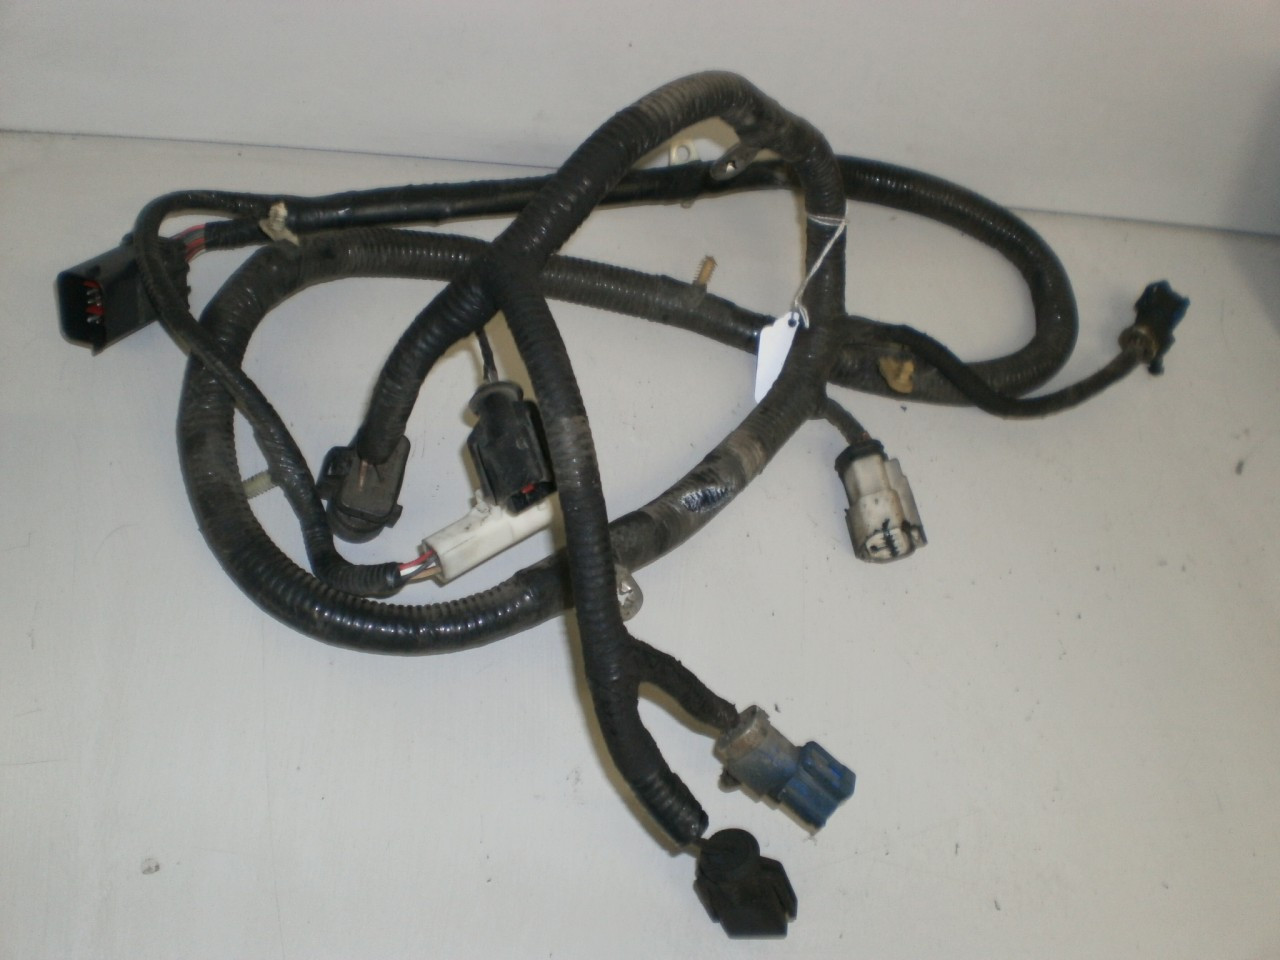 1996 1998 ford mustang 3 8 automatic transmission wire harness lx 7c078 [ 1280 x 960 Pixel ]